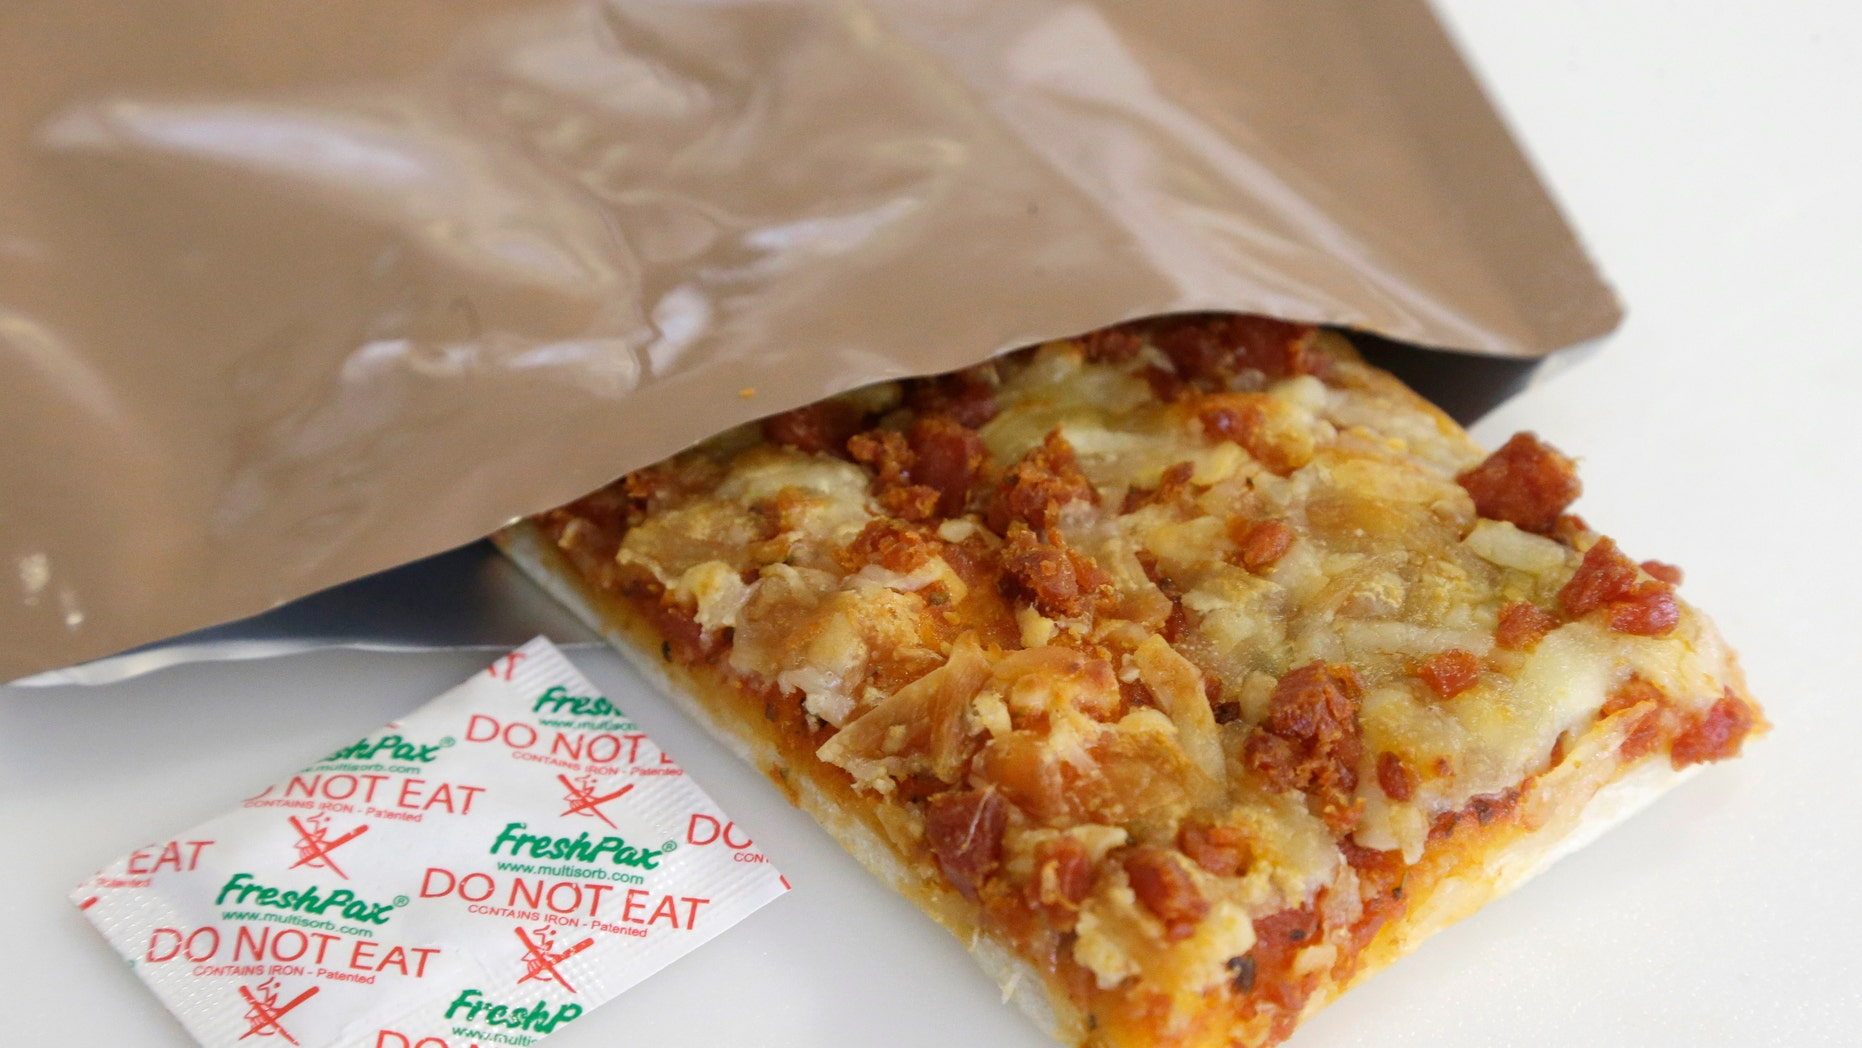 Feb. 6, 2014: A slice of prototype pizza, in development to be used in MRE's -- meals ready to eat -- sits in a packet next to a smaller packet known as an oxygen scavenger, left, at the U.S. Army Natick Soldier Research, Development and Engineering Center in Natick, Mass. Pizza is in development to be used in individual field rations known as meal ready to eat, or MREs. It has been one of the most requested options for soldiers craving a slice of normalcy in the battlefield and disaster areas. (AP/Steven Senne)